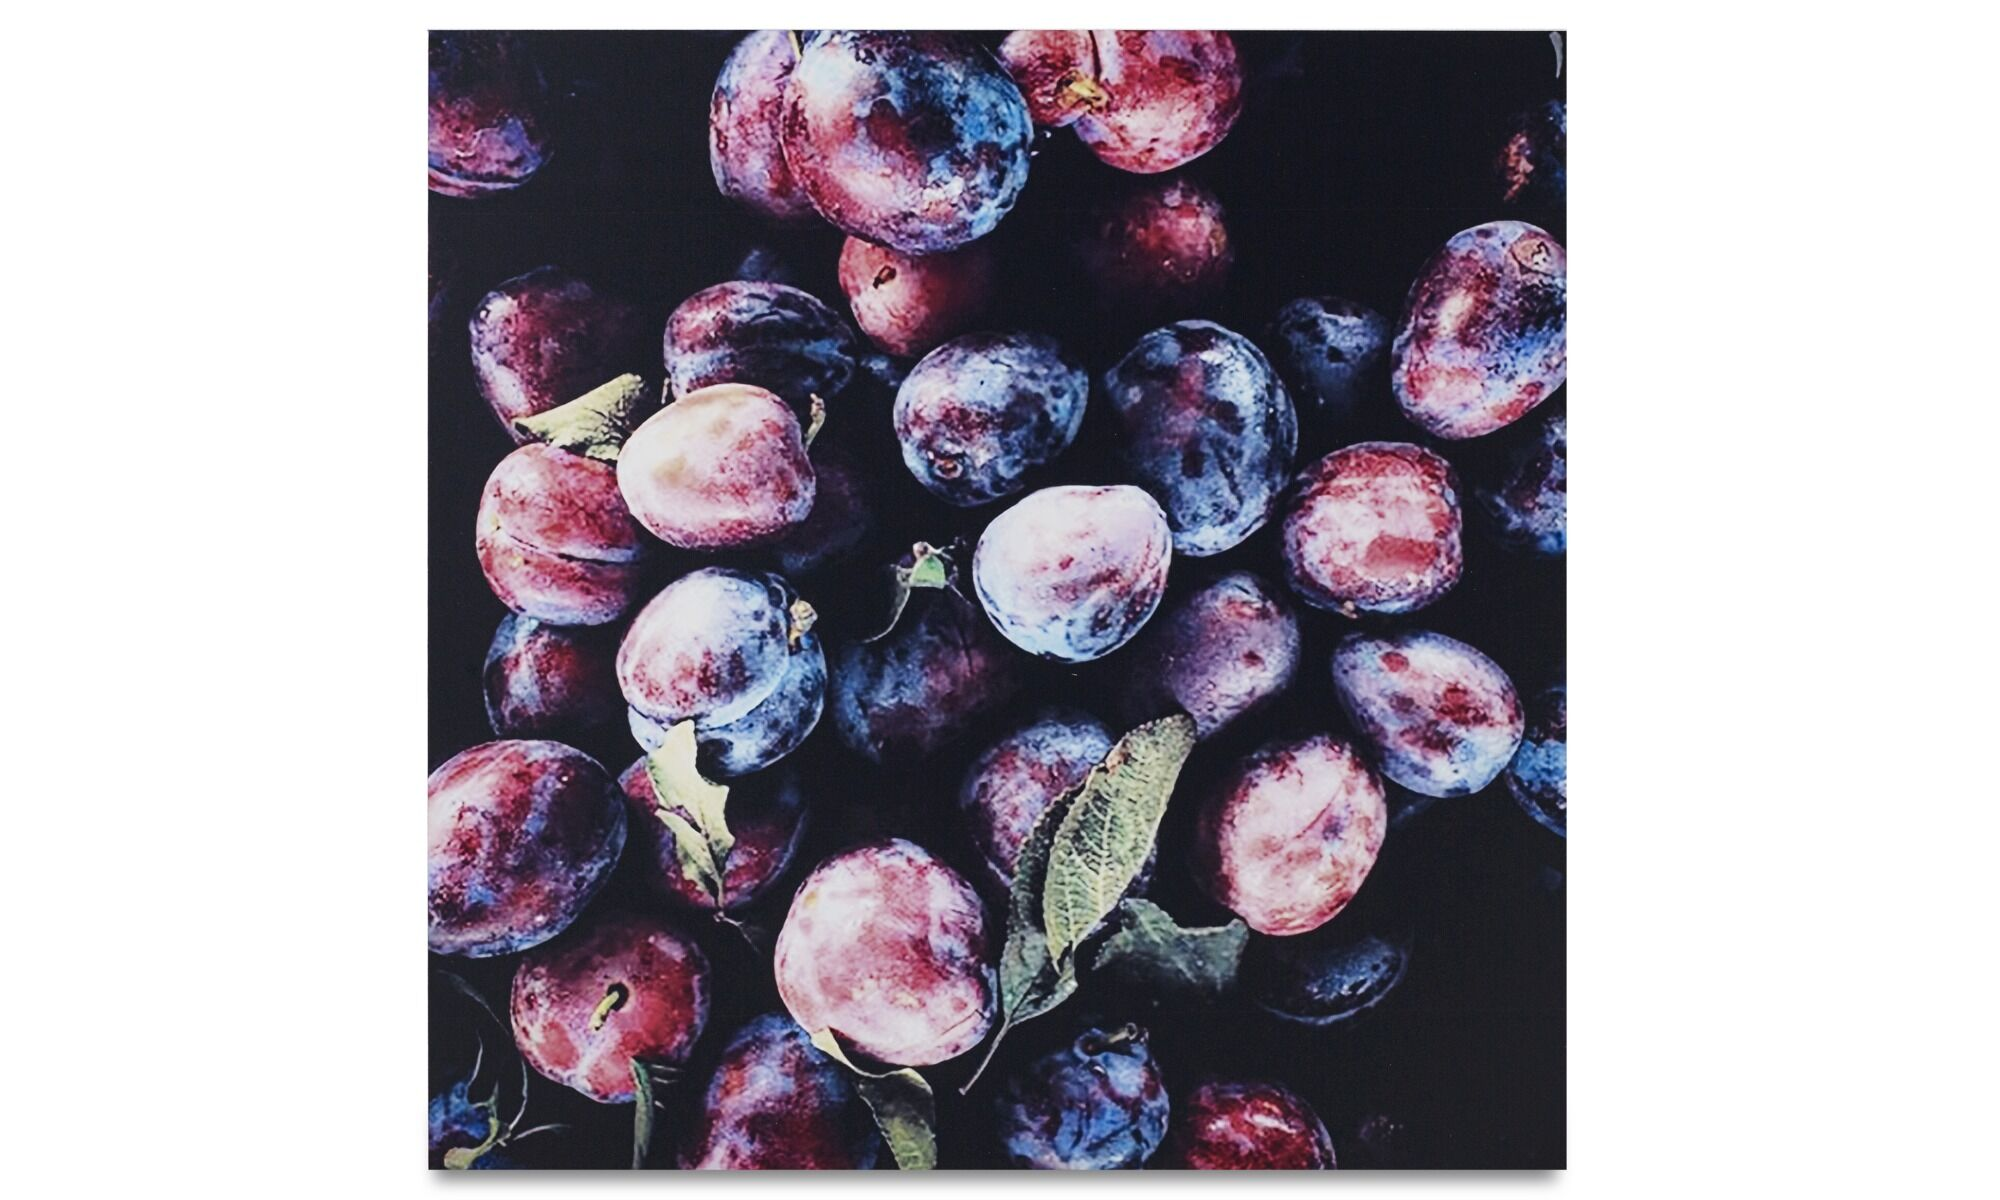 Plums - Gallery Piece